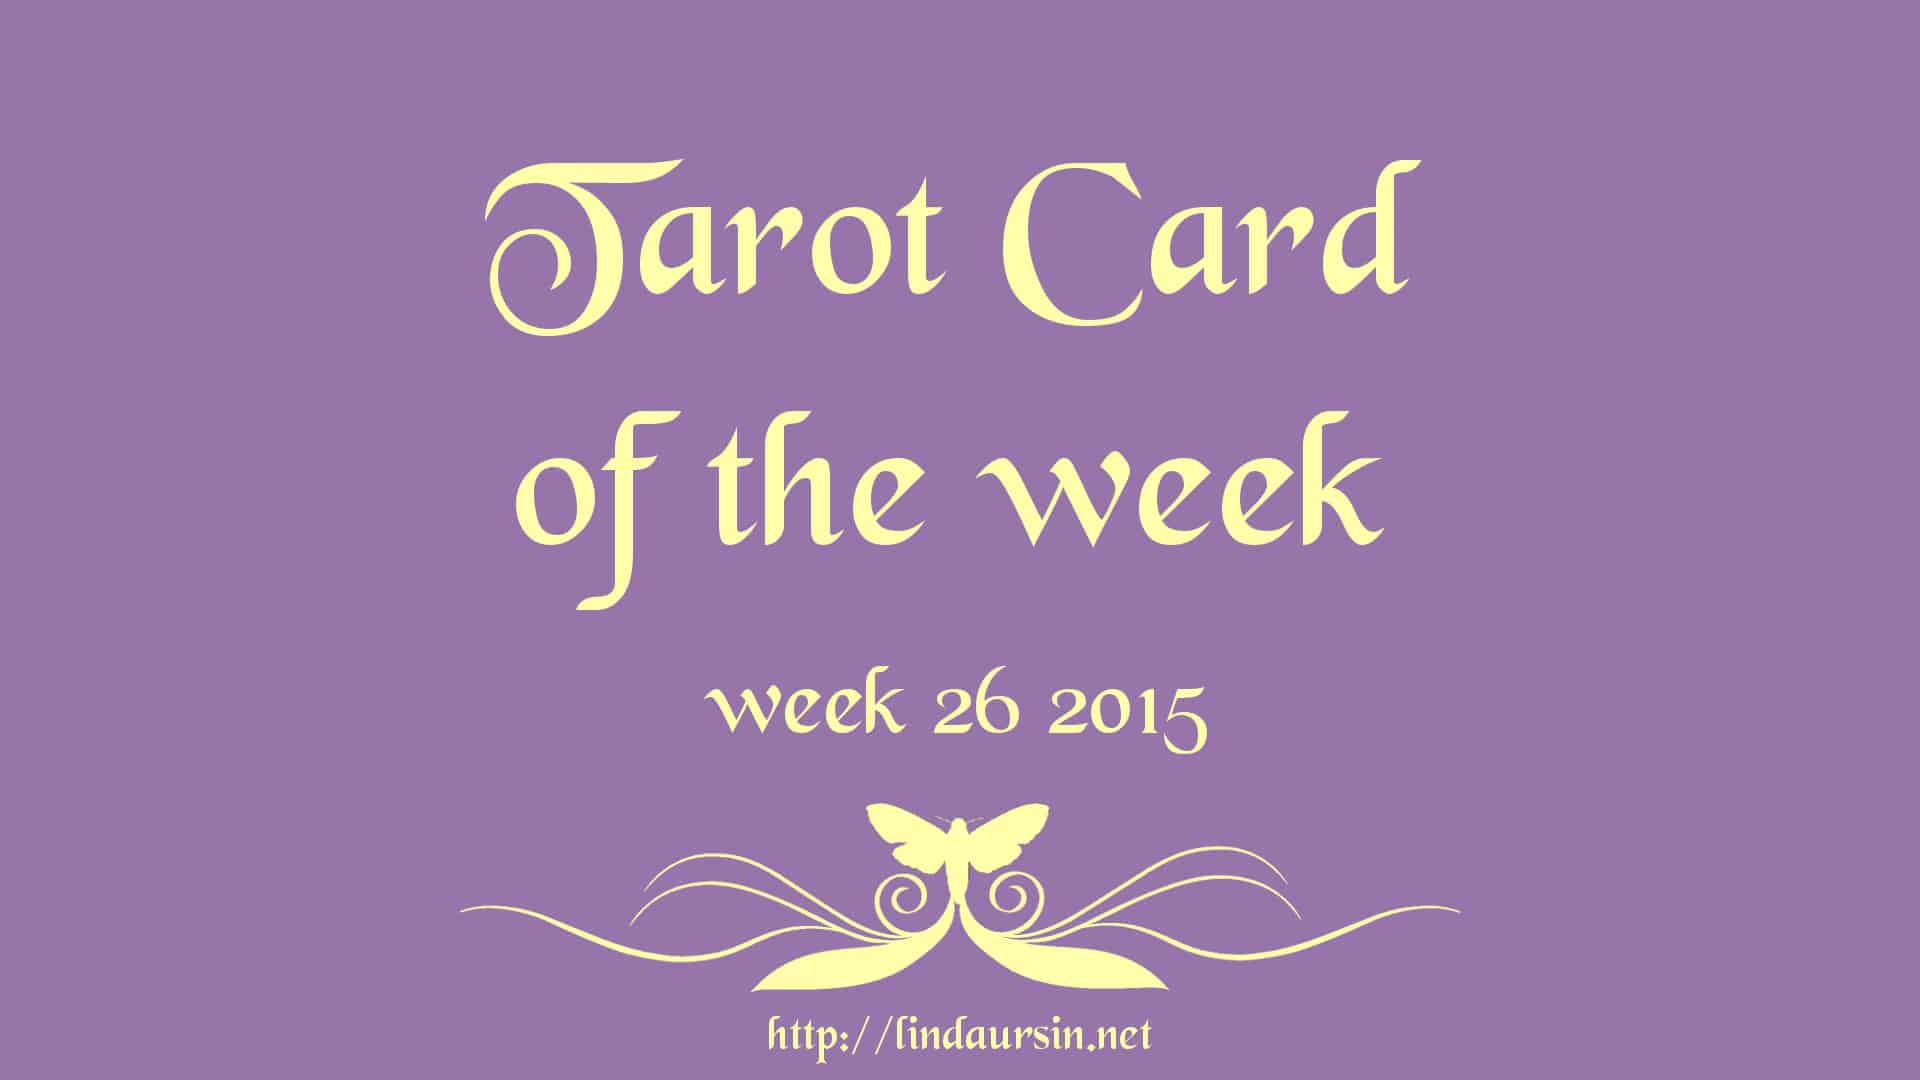 Your weekly Tarot card for week 26 2015